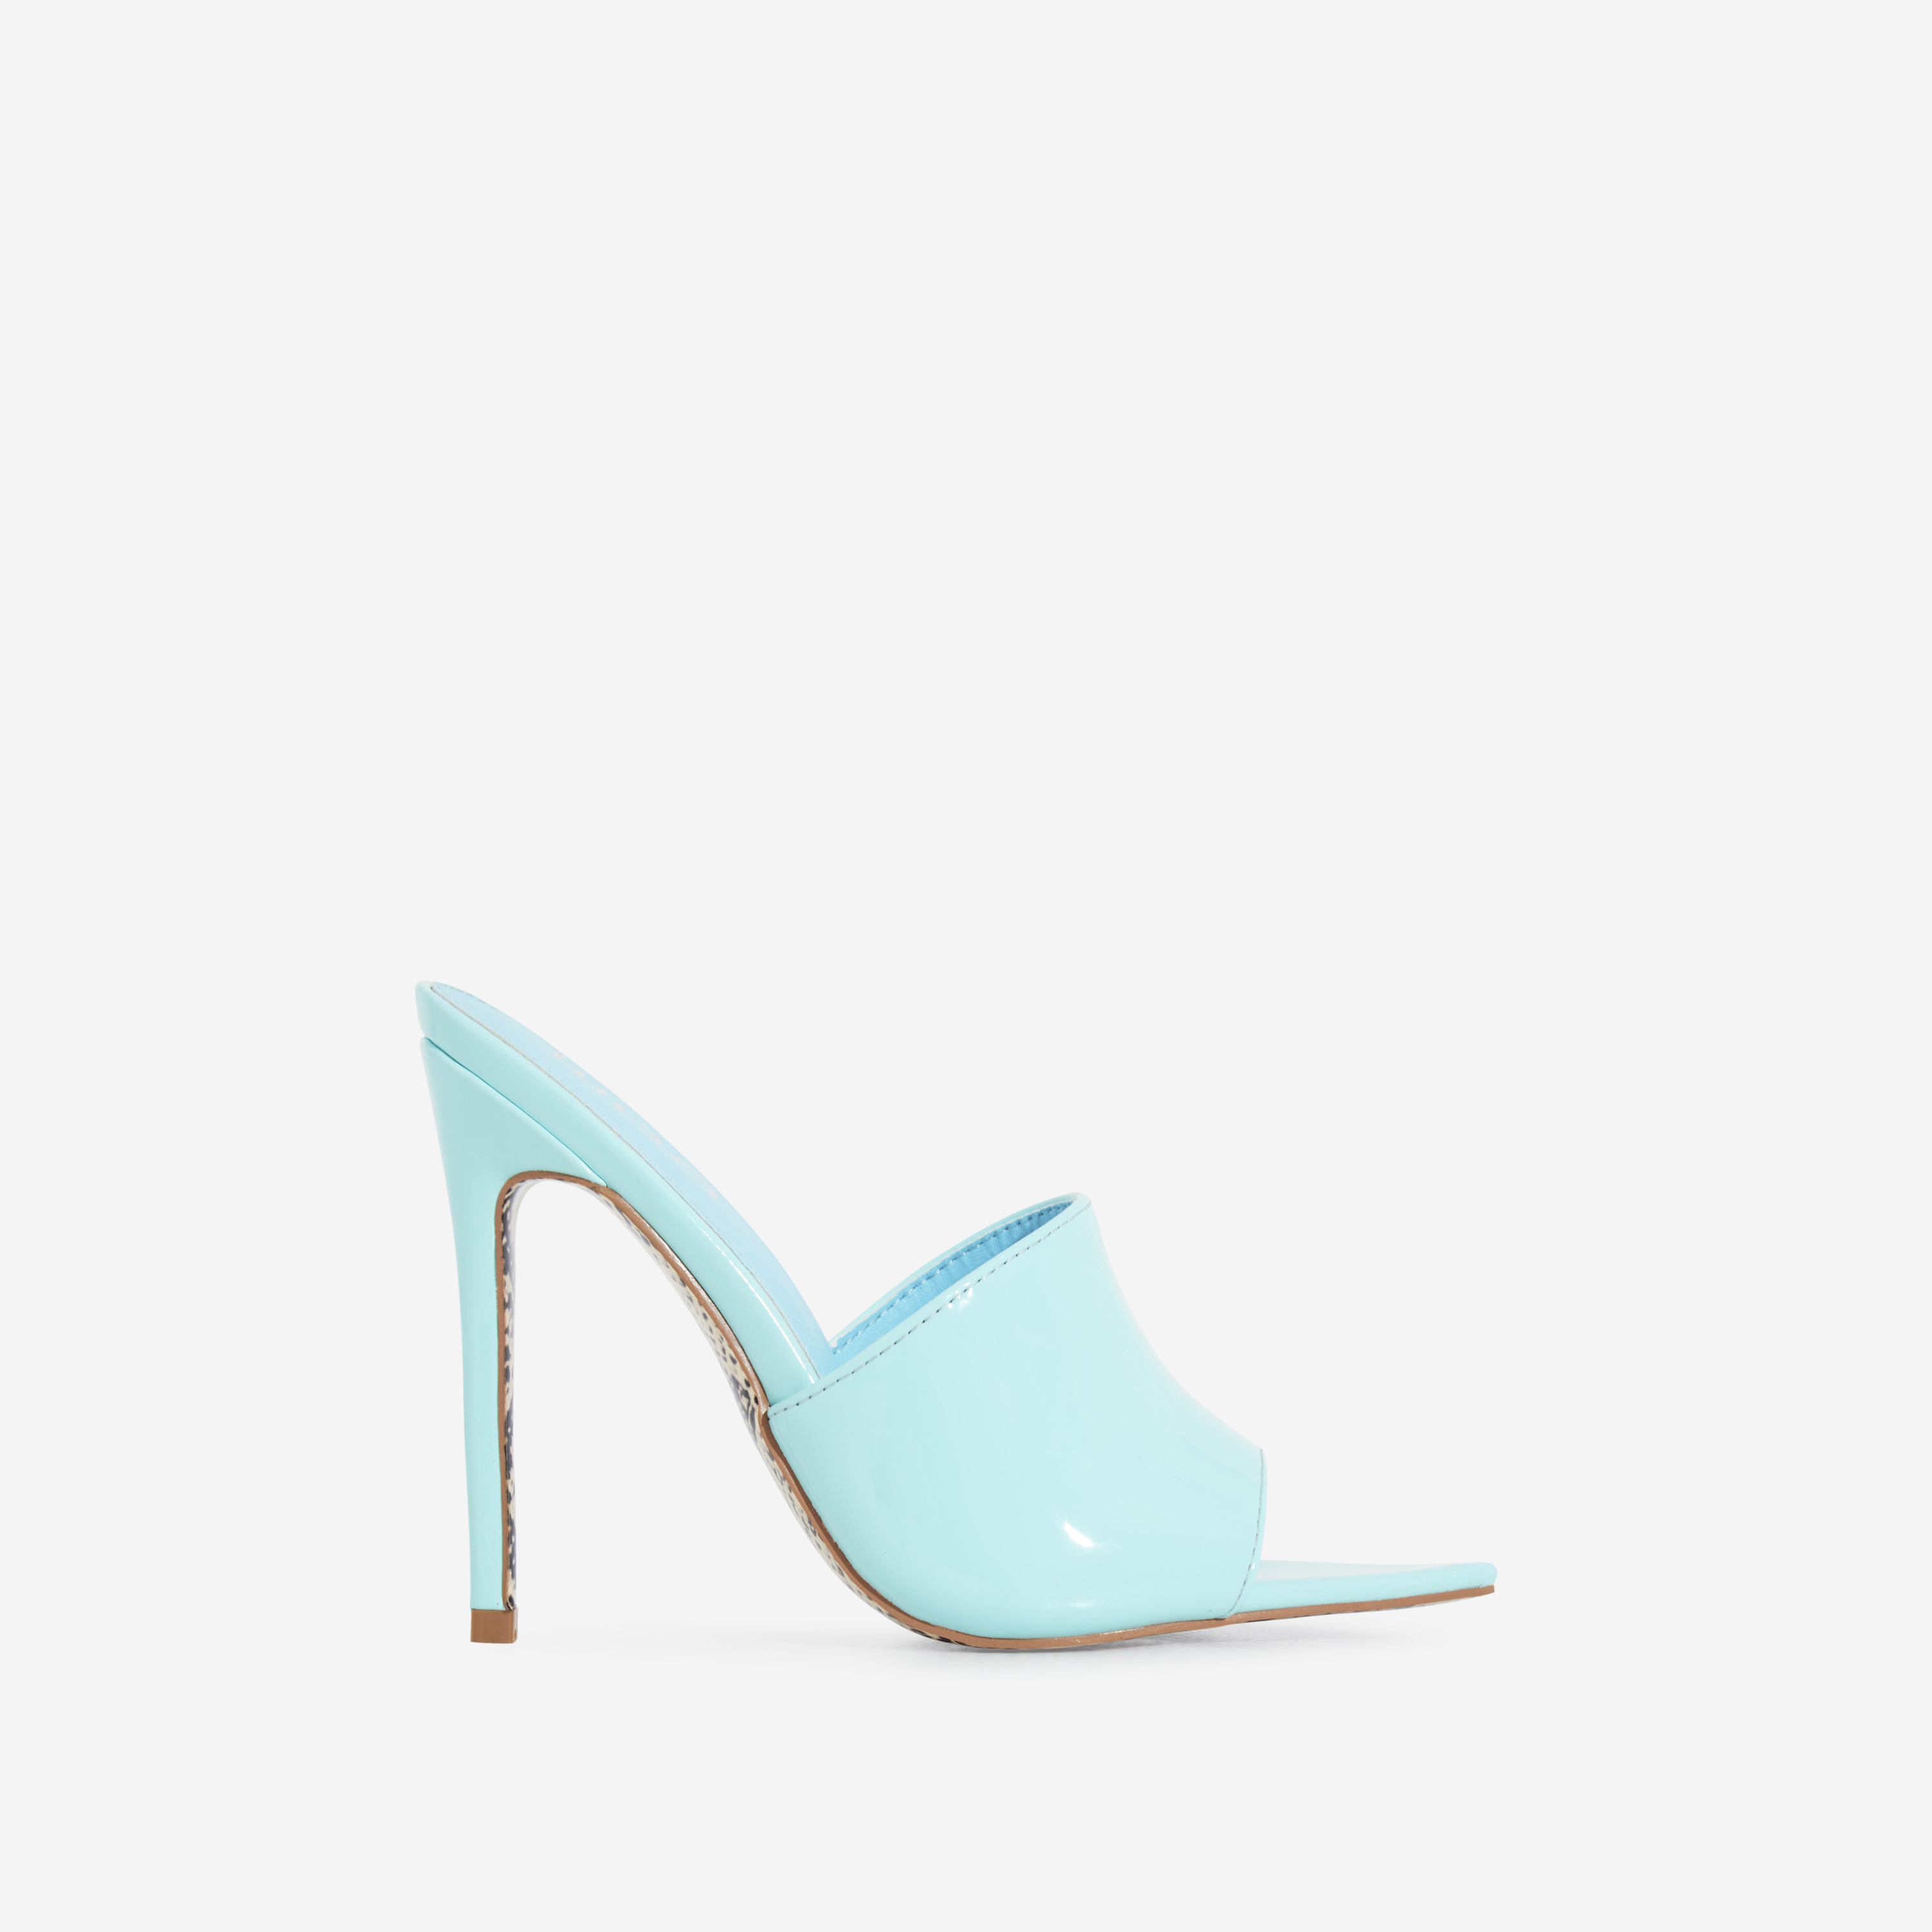 Koko Snake Print Sole Pointed Peep Toe Mule In Blue Patent